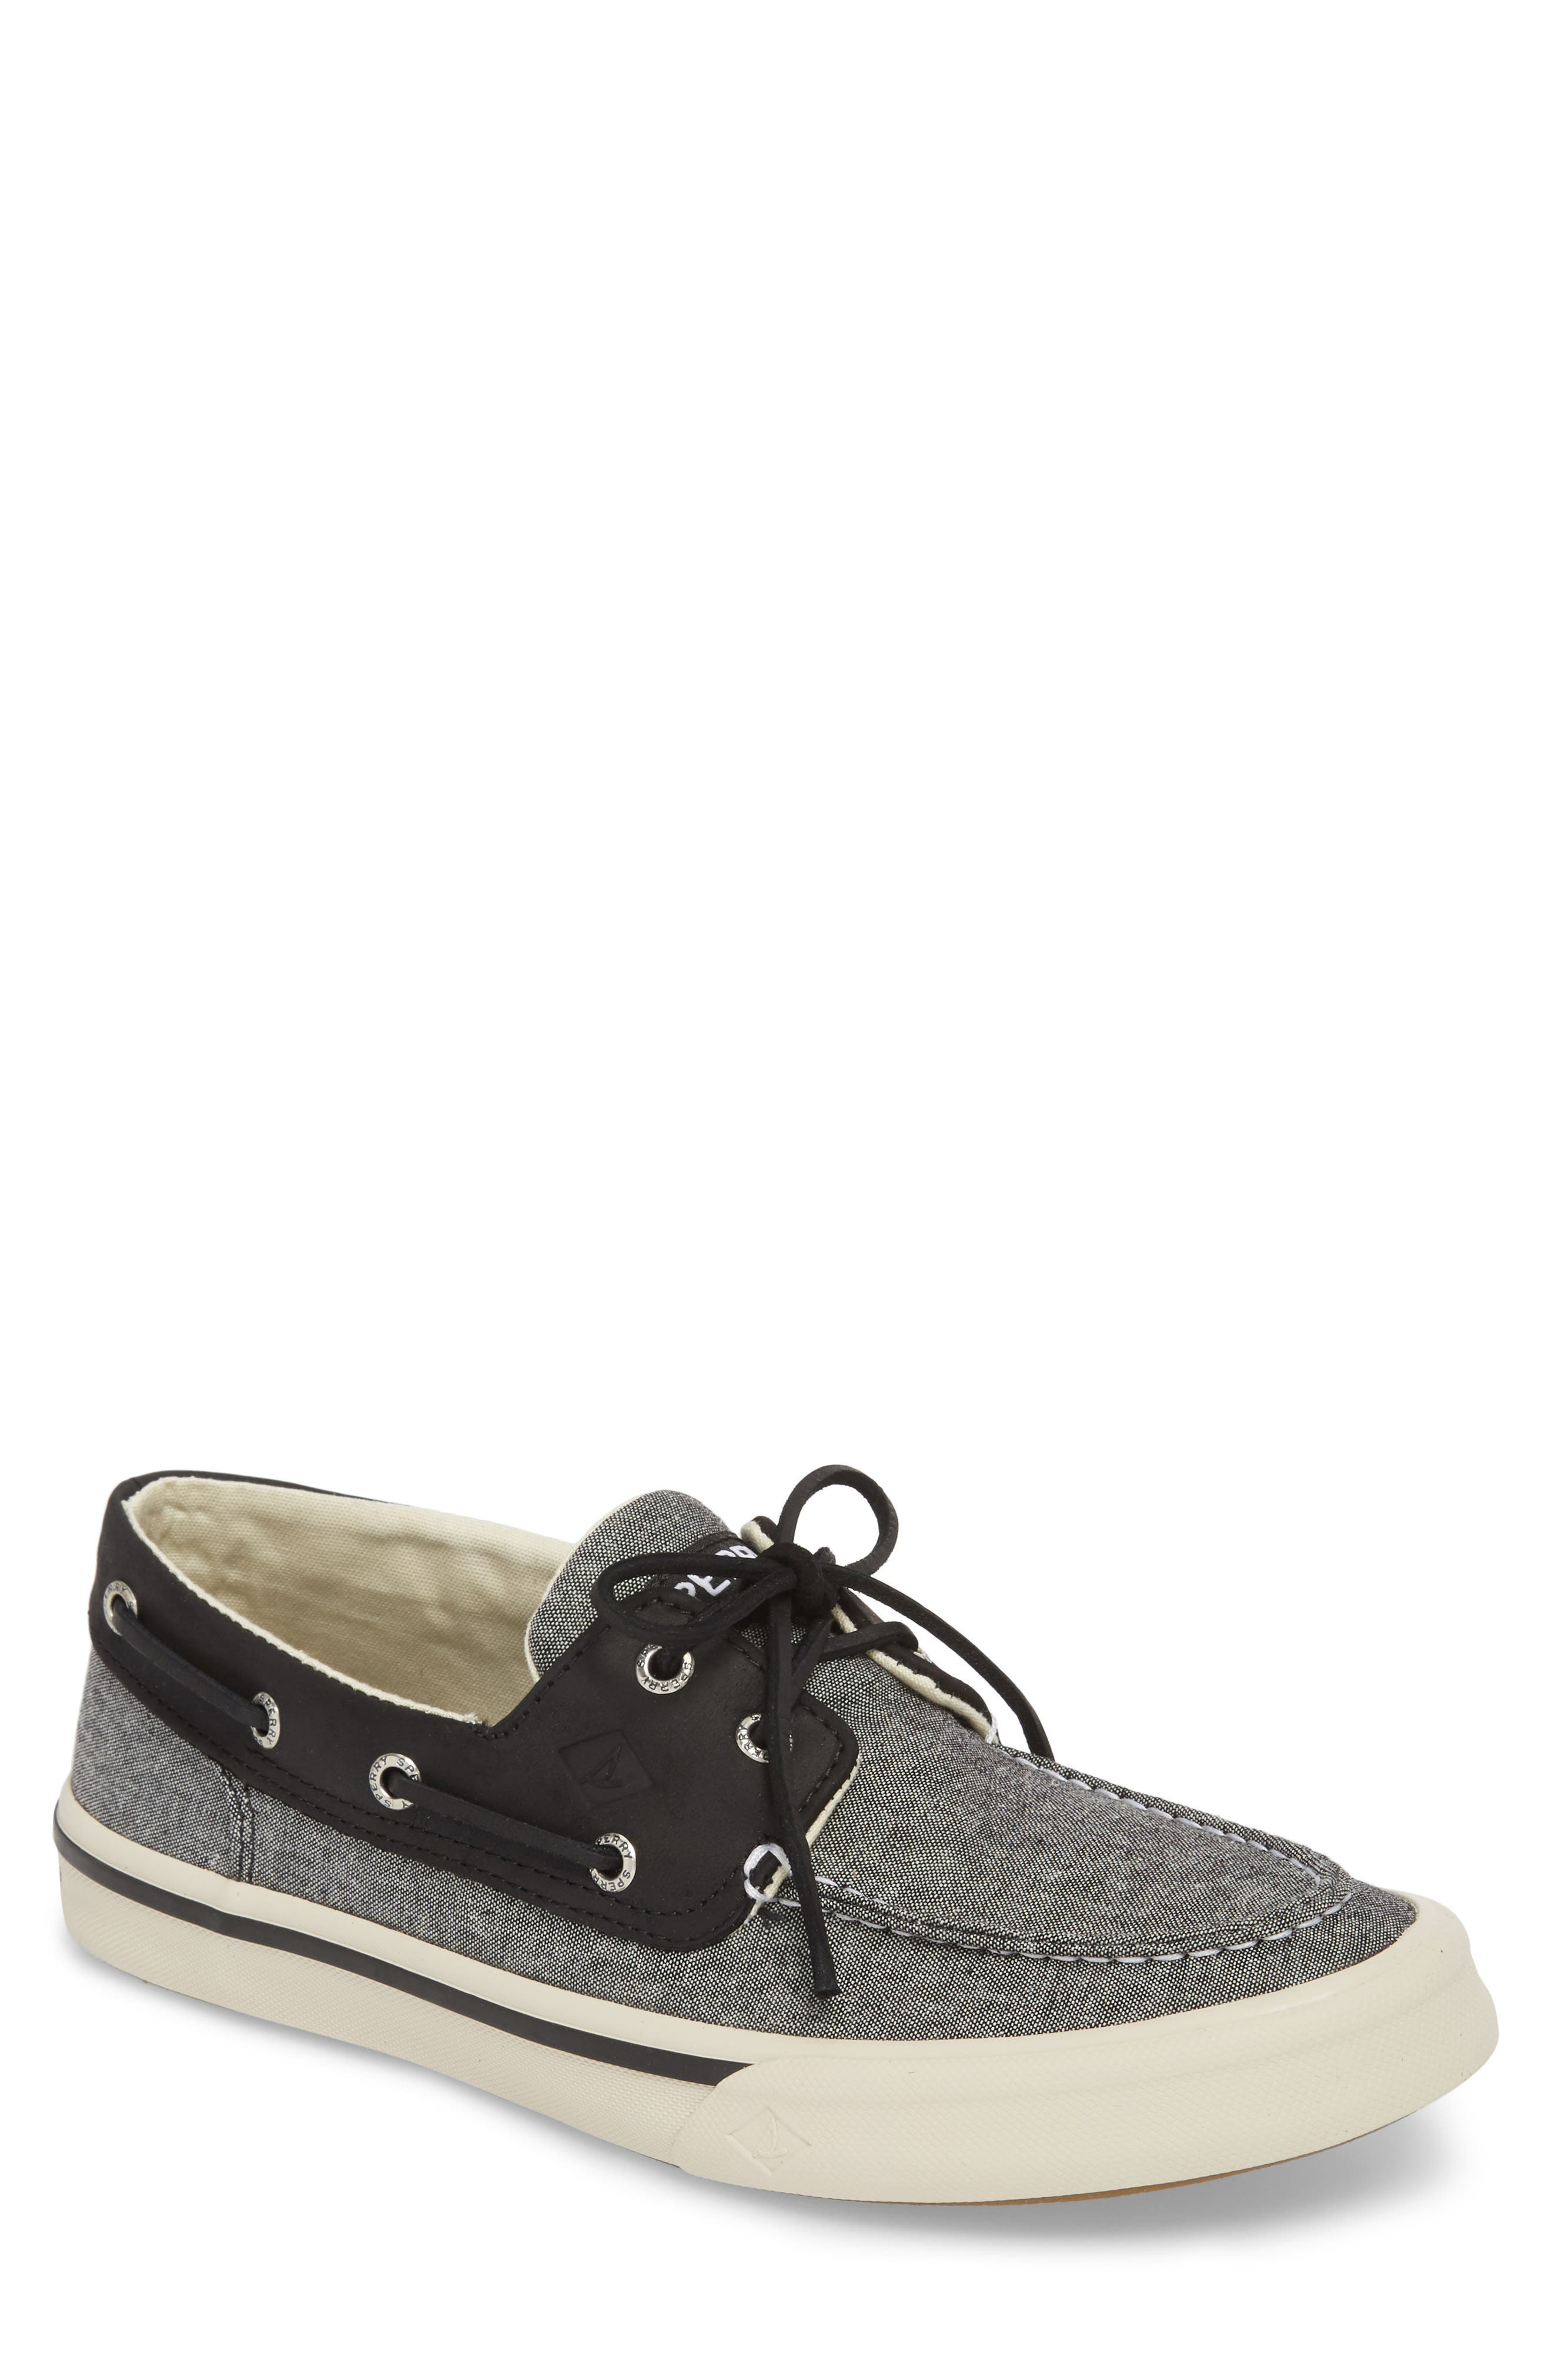 Bahama II Boat Shoe,                         Main,                         color, 021